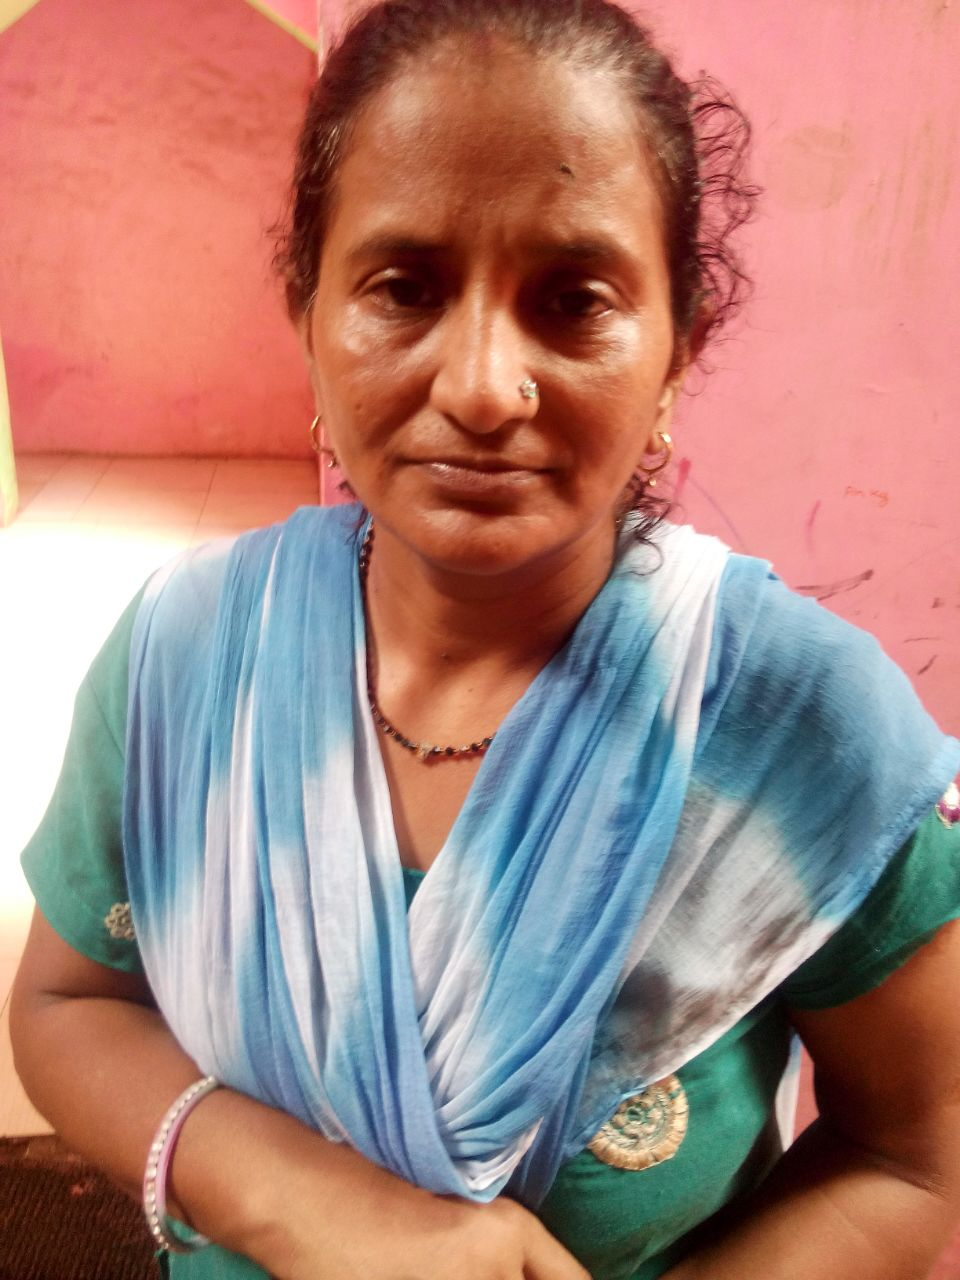 This is Rani. She is 41 years old. She tells us that she feels hopeless but wants to feel happier.